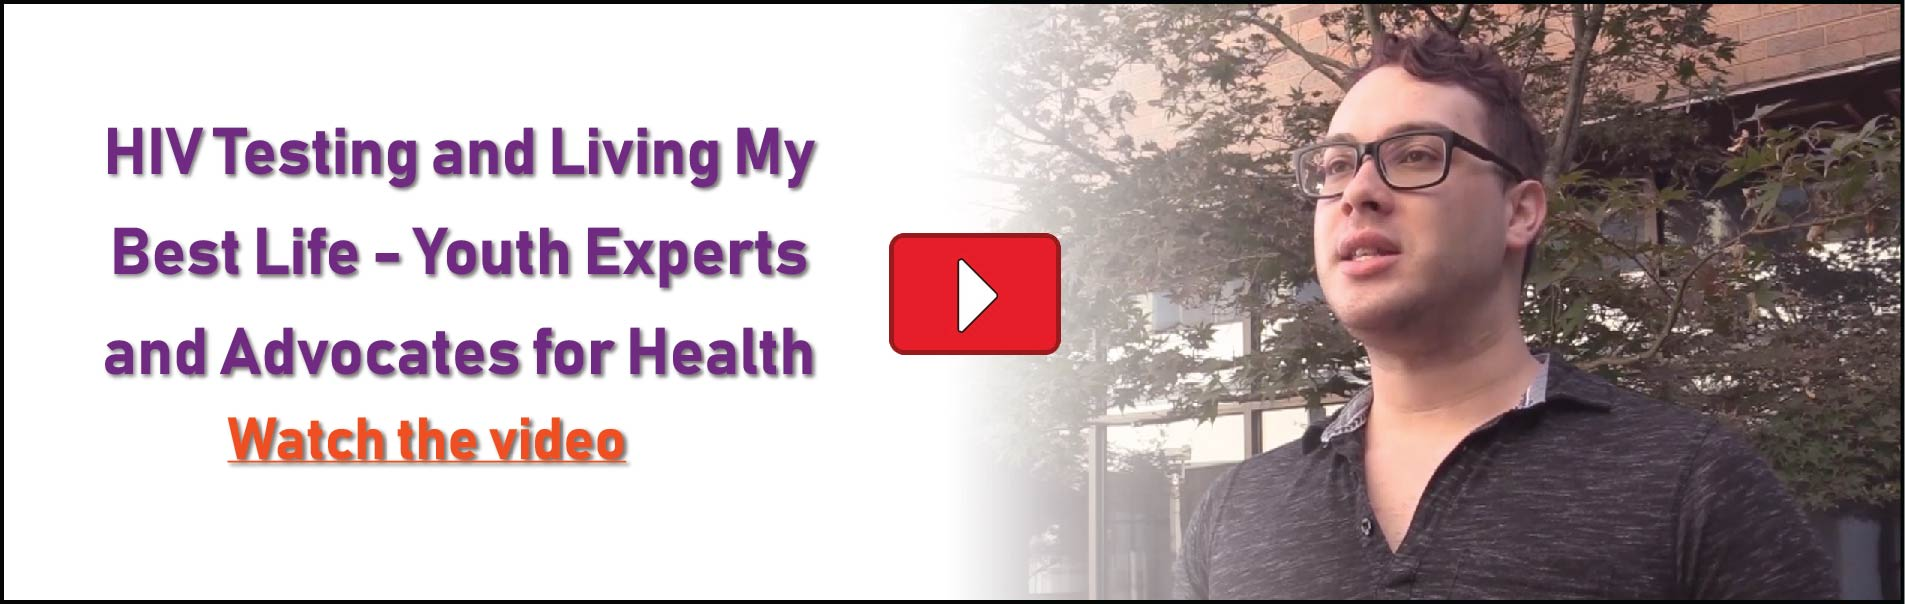 HIV Testing and Living My Best Life – Youth Experts and Advocates for Health. Watch the video.